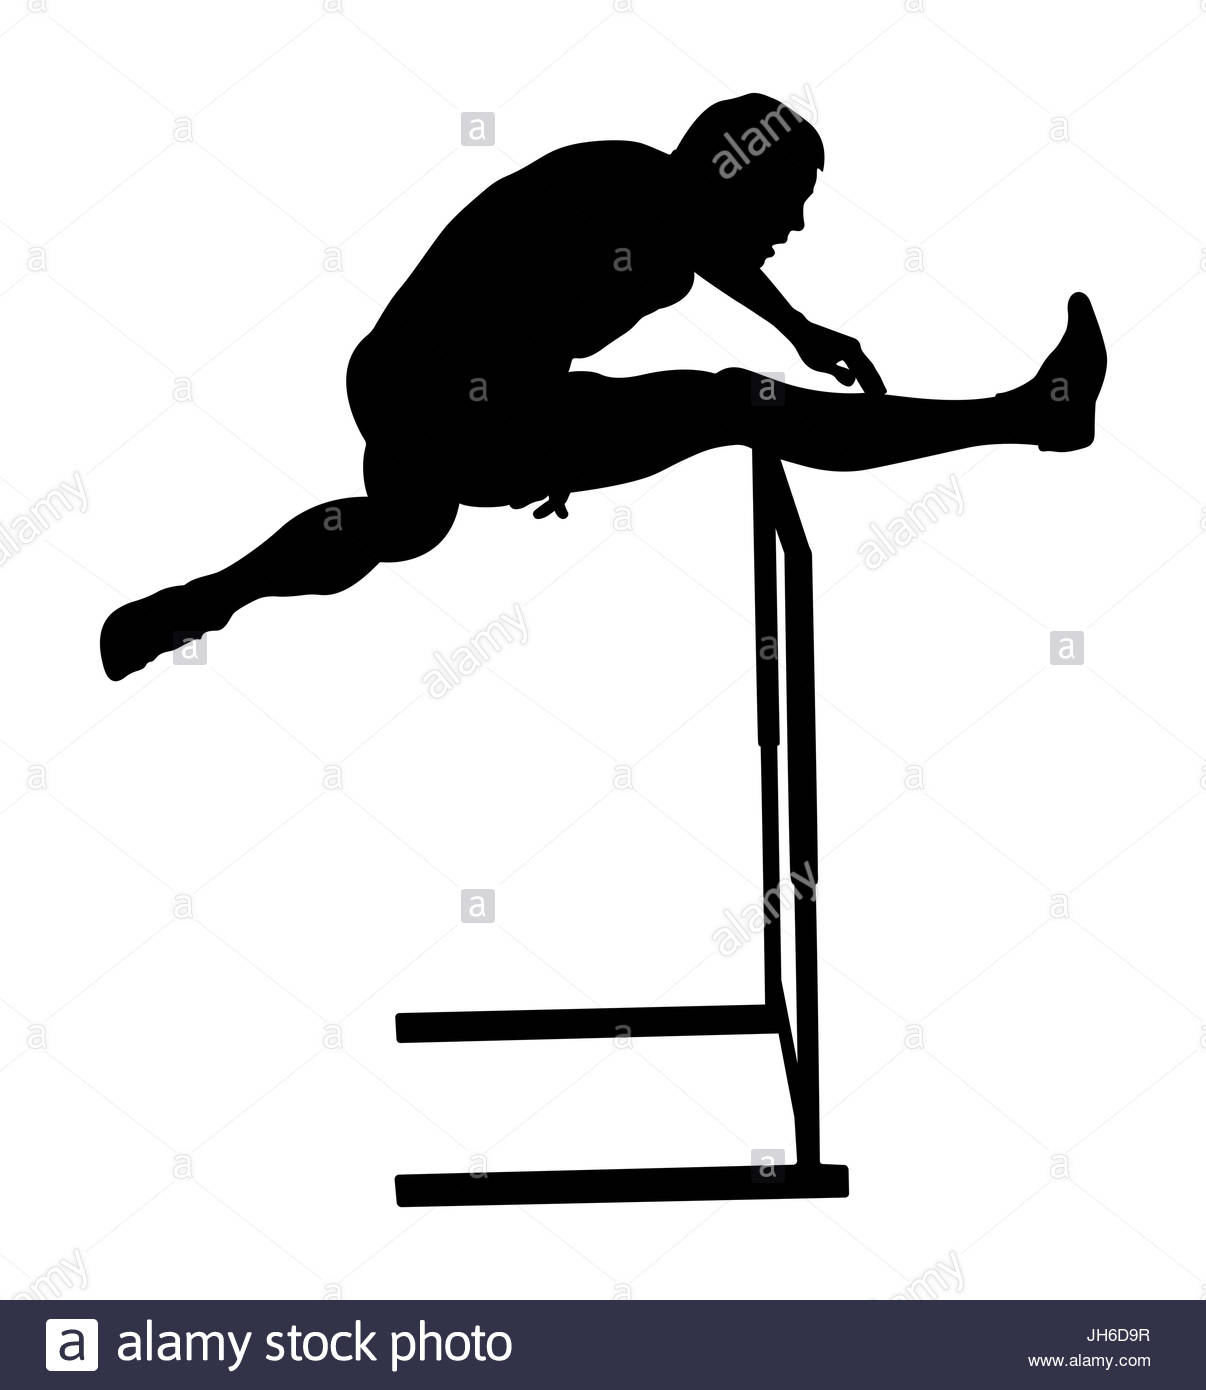 1206x1390 Crossing Hurdles Male Runner Athletics Black Silhouette Stock